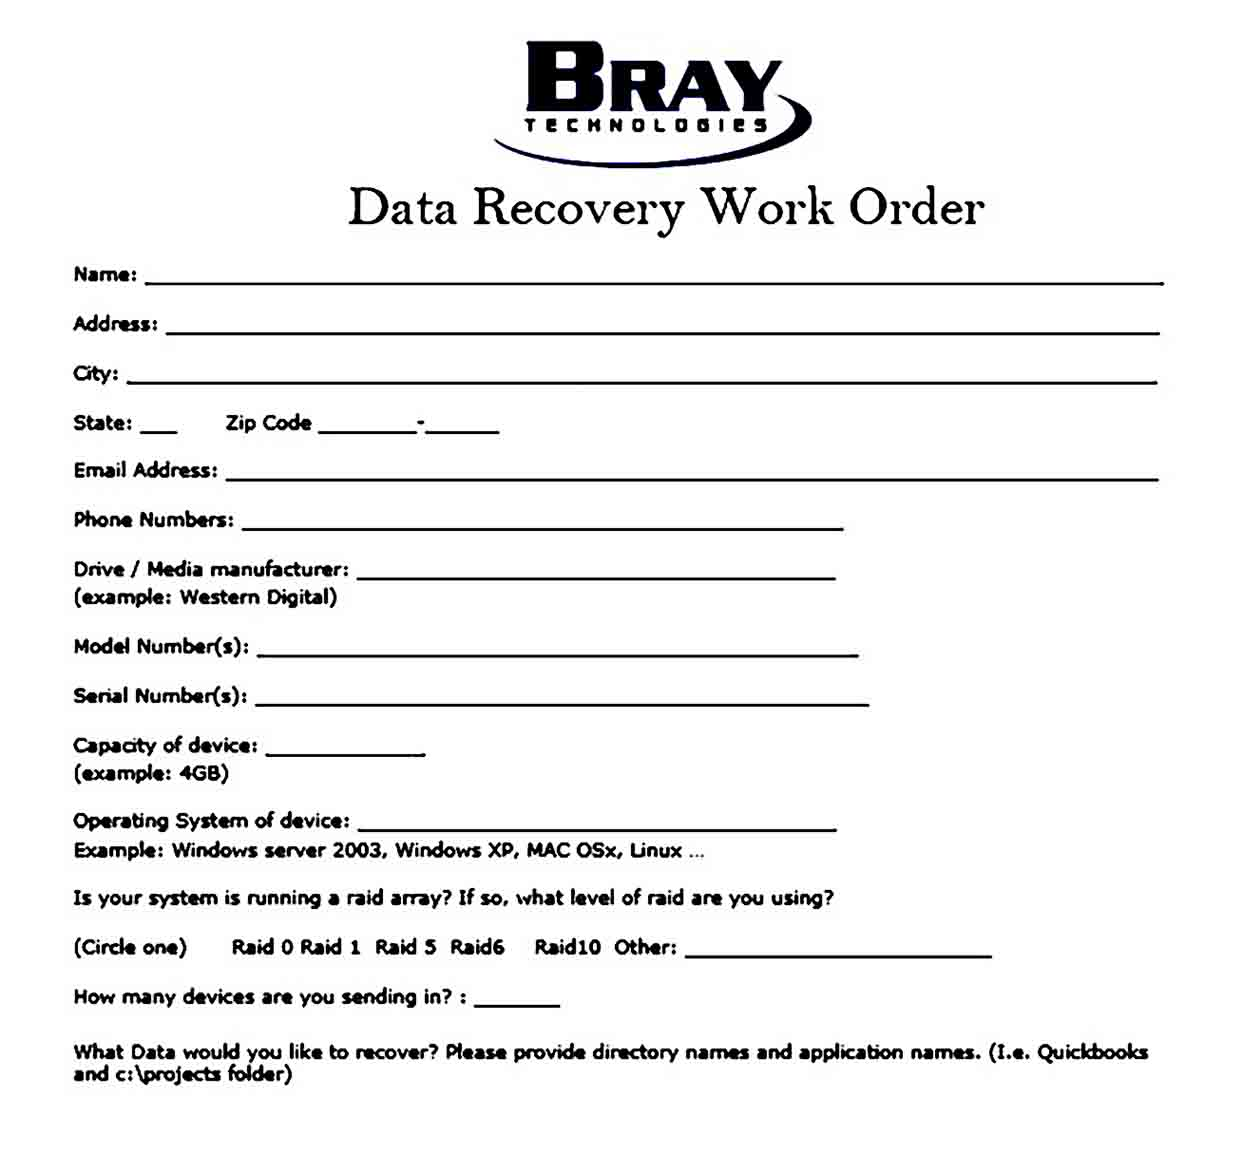 Data Recovery Work Order templates